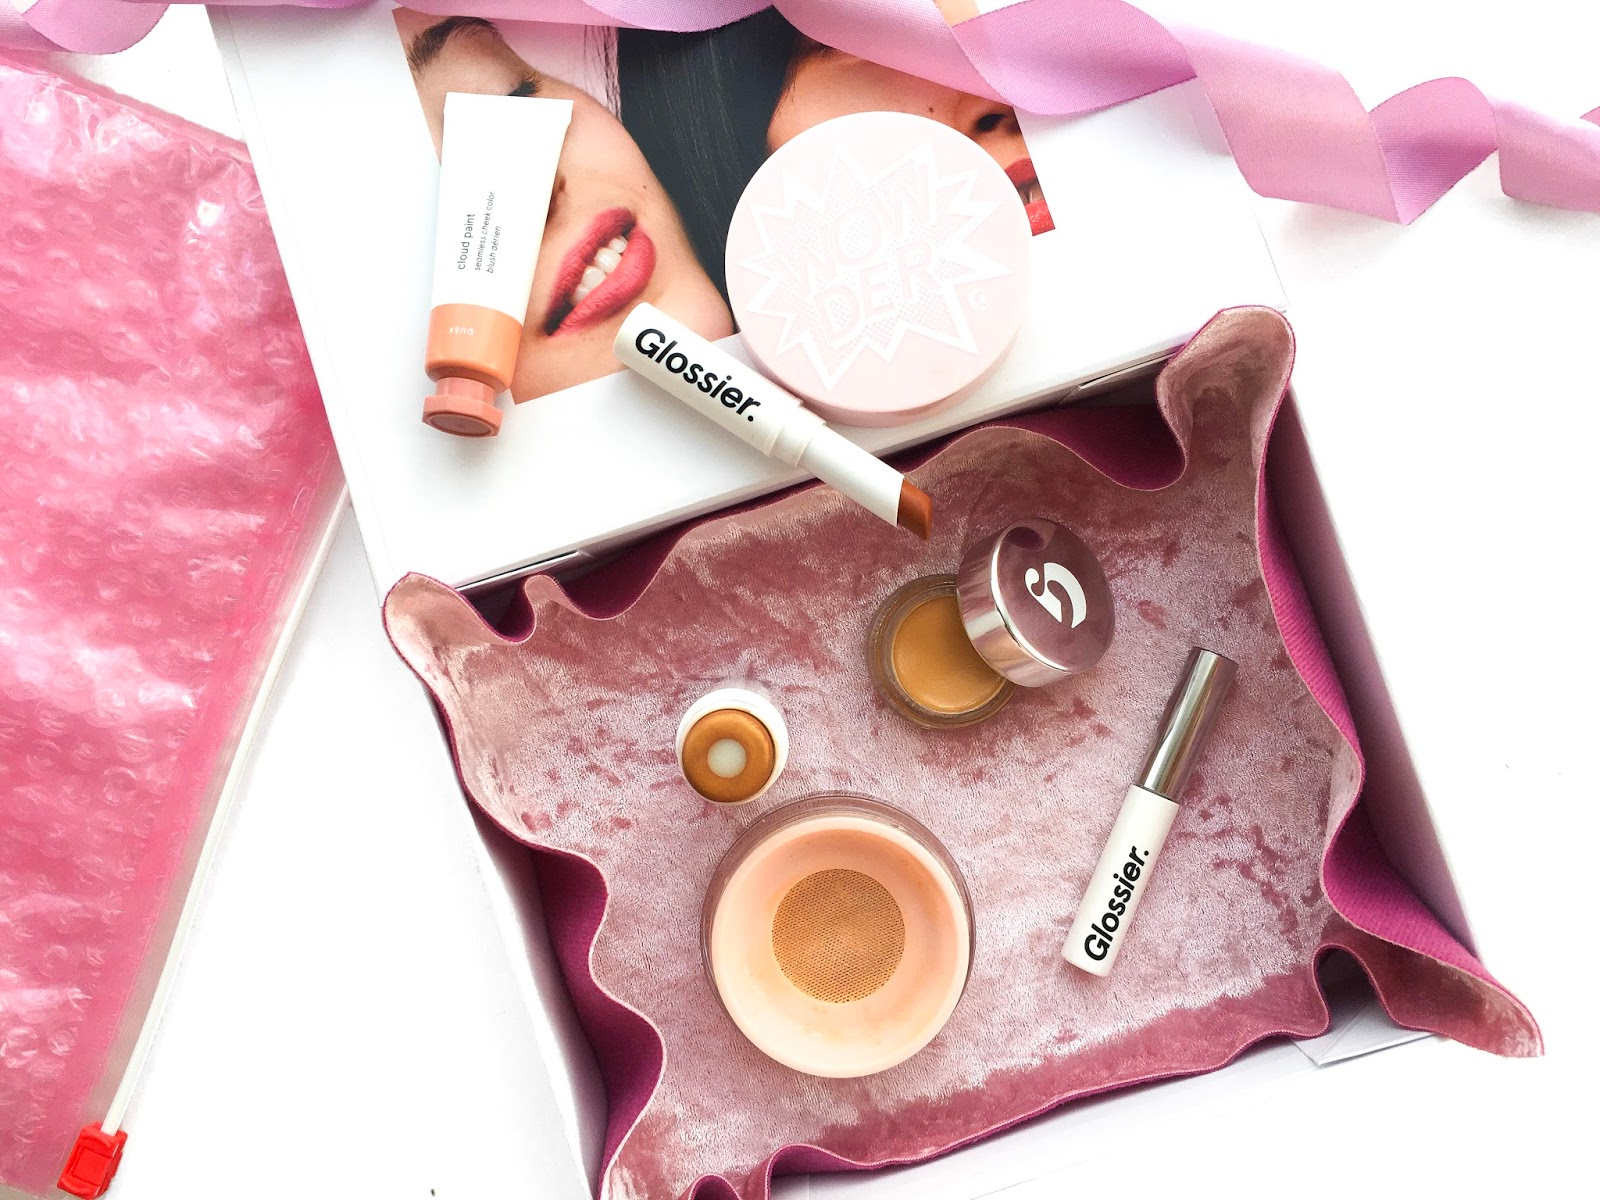 glossier makeup review, glossier phase 2 set review, glossier cloud paint dusk review